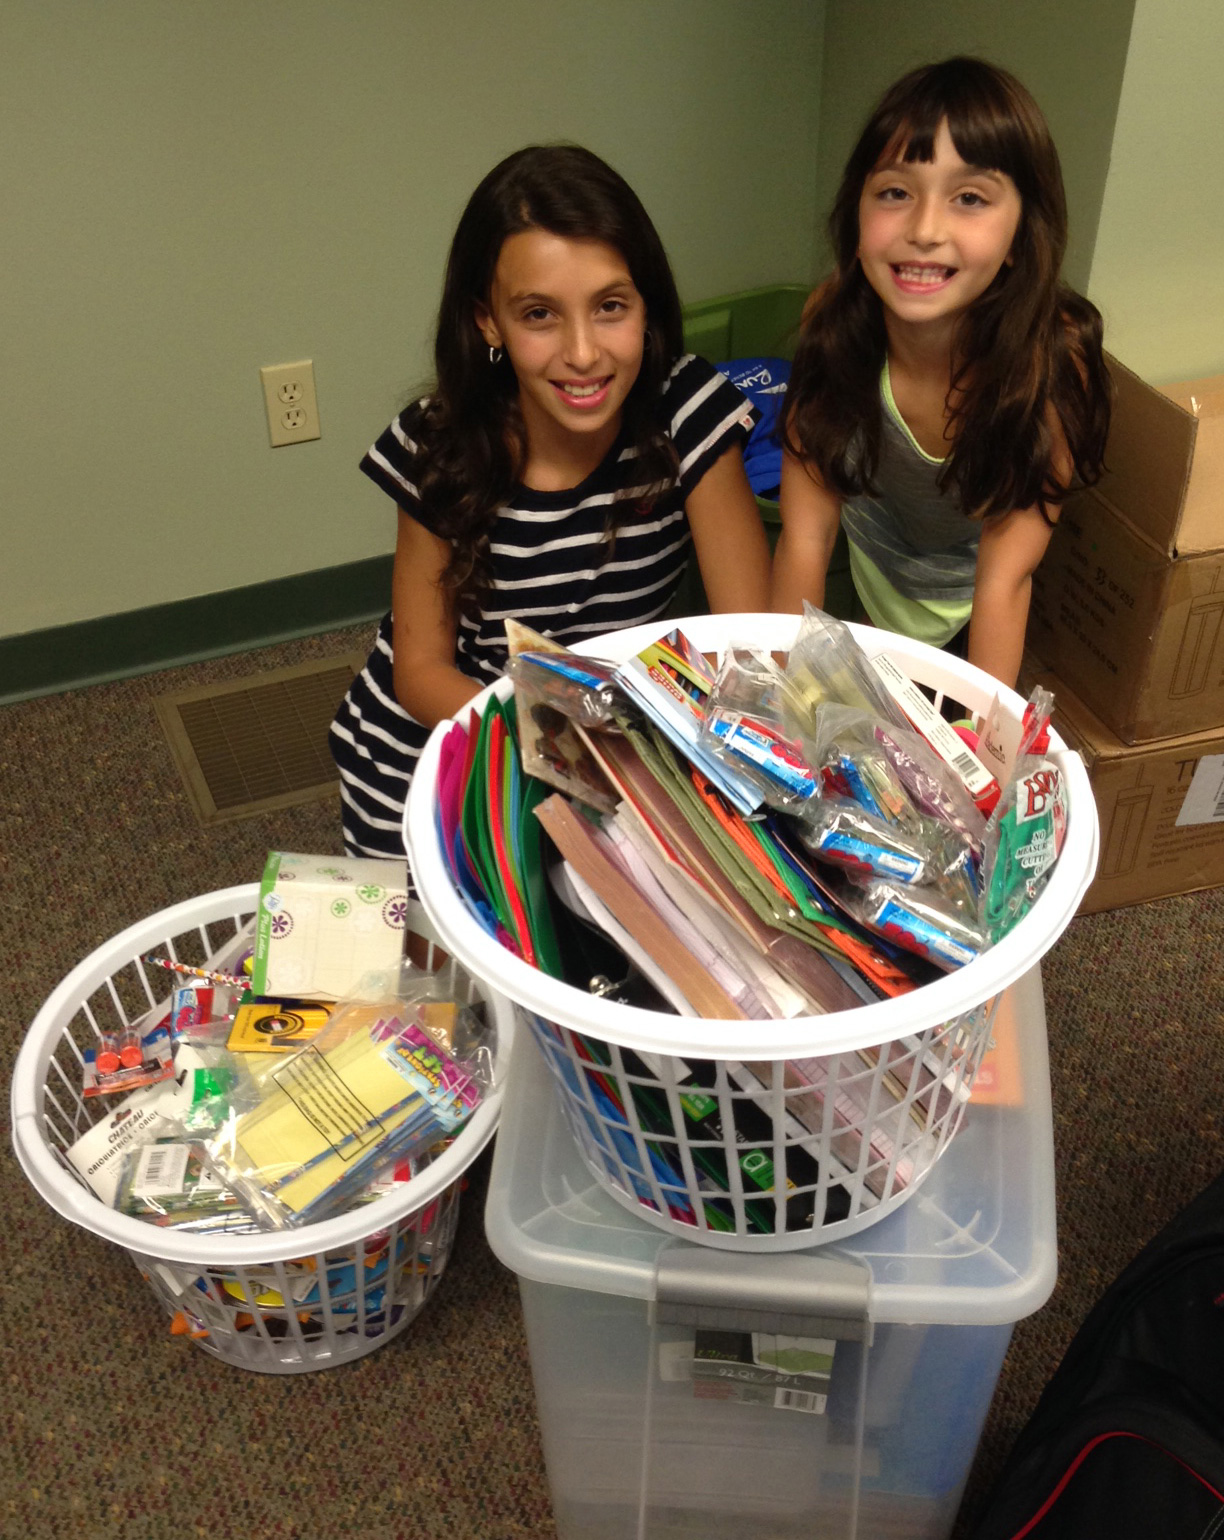 photo of two young girls with baskets of donated school supplies